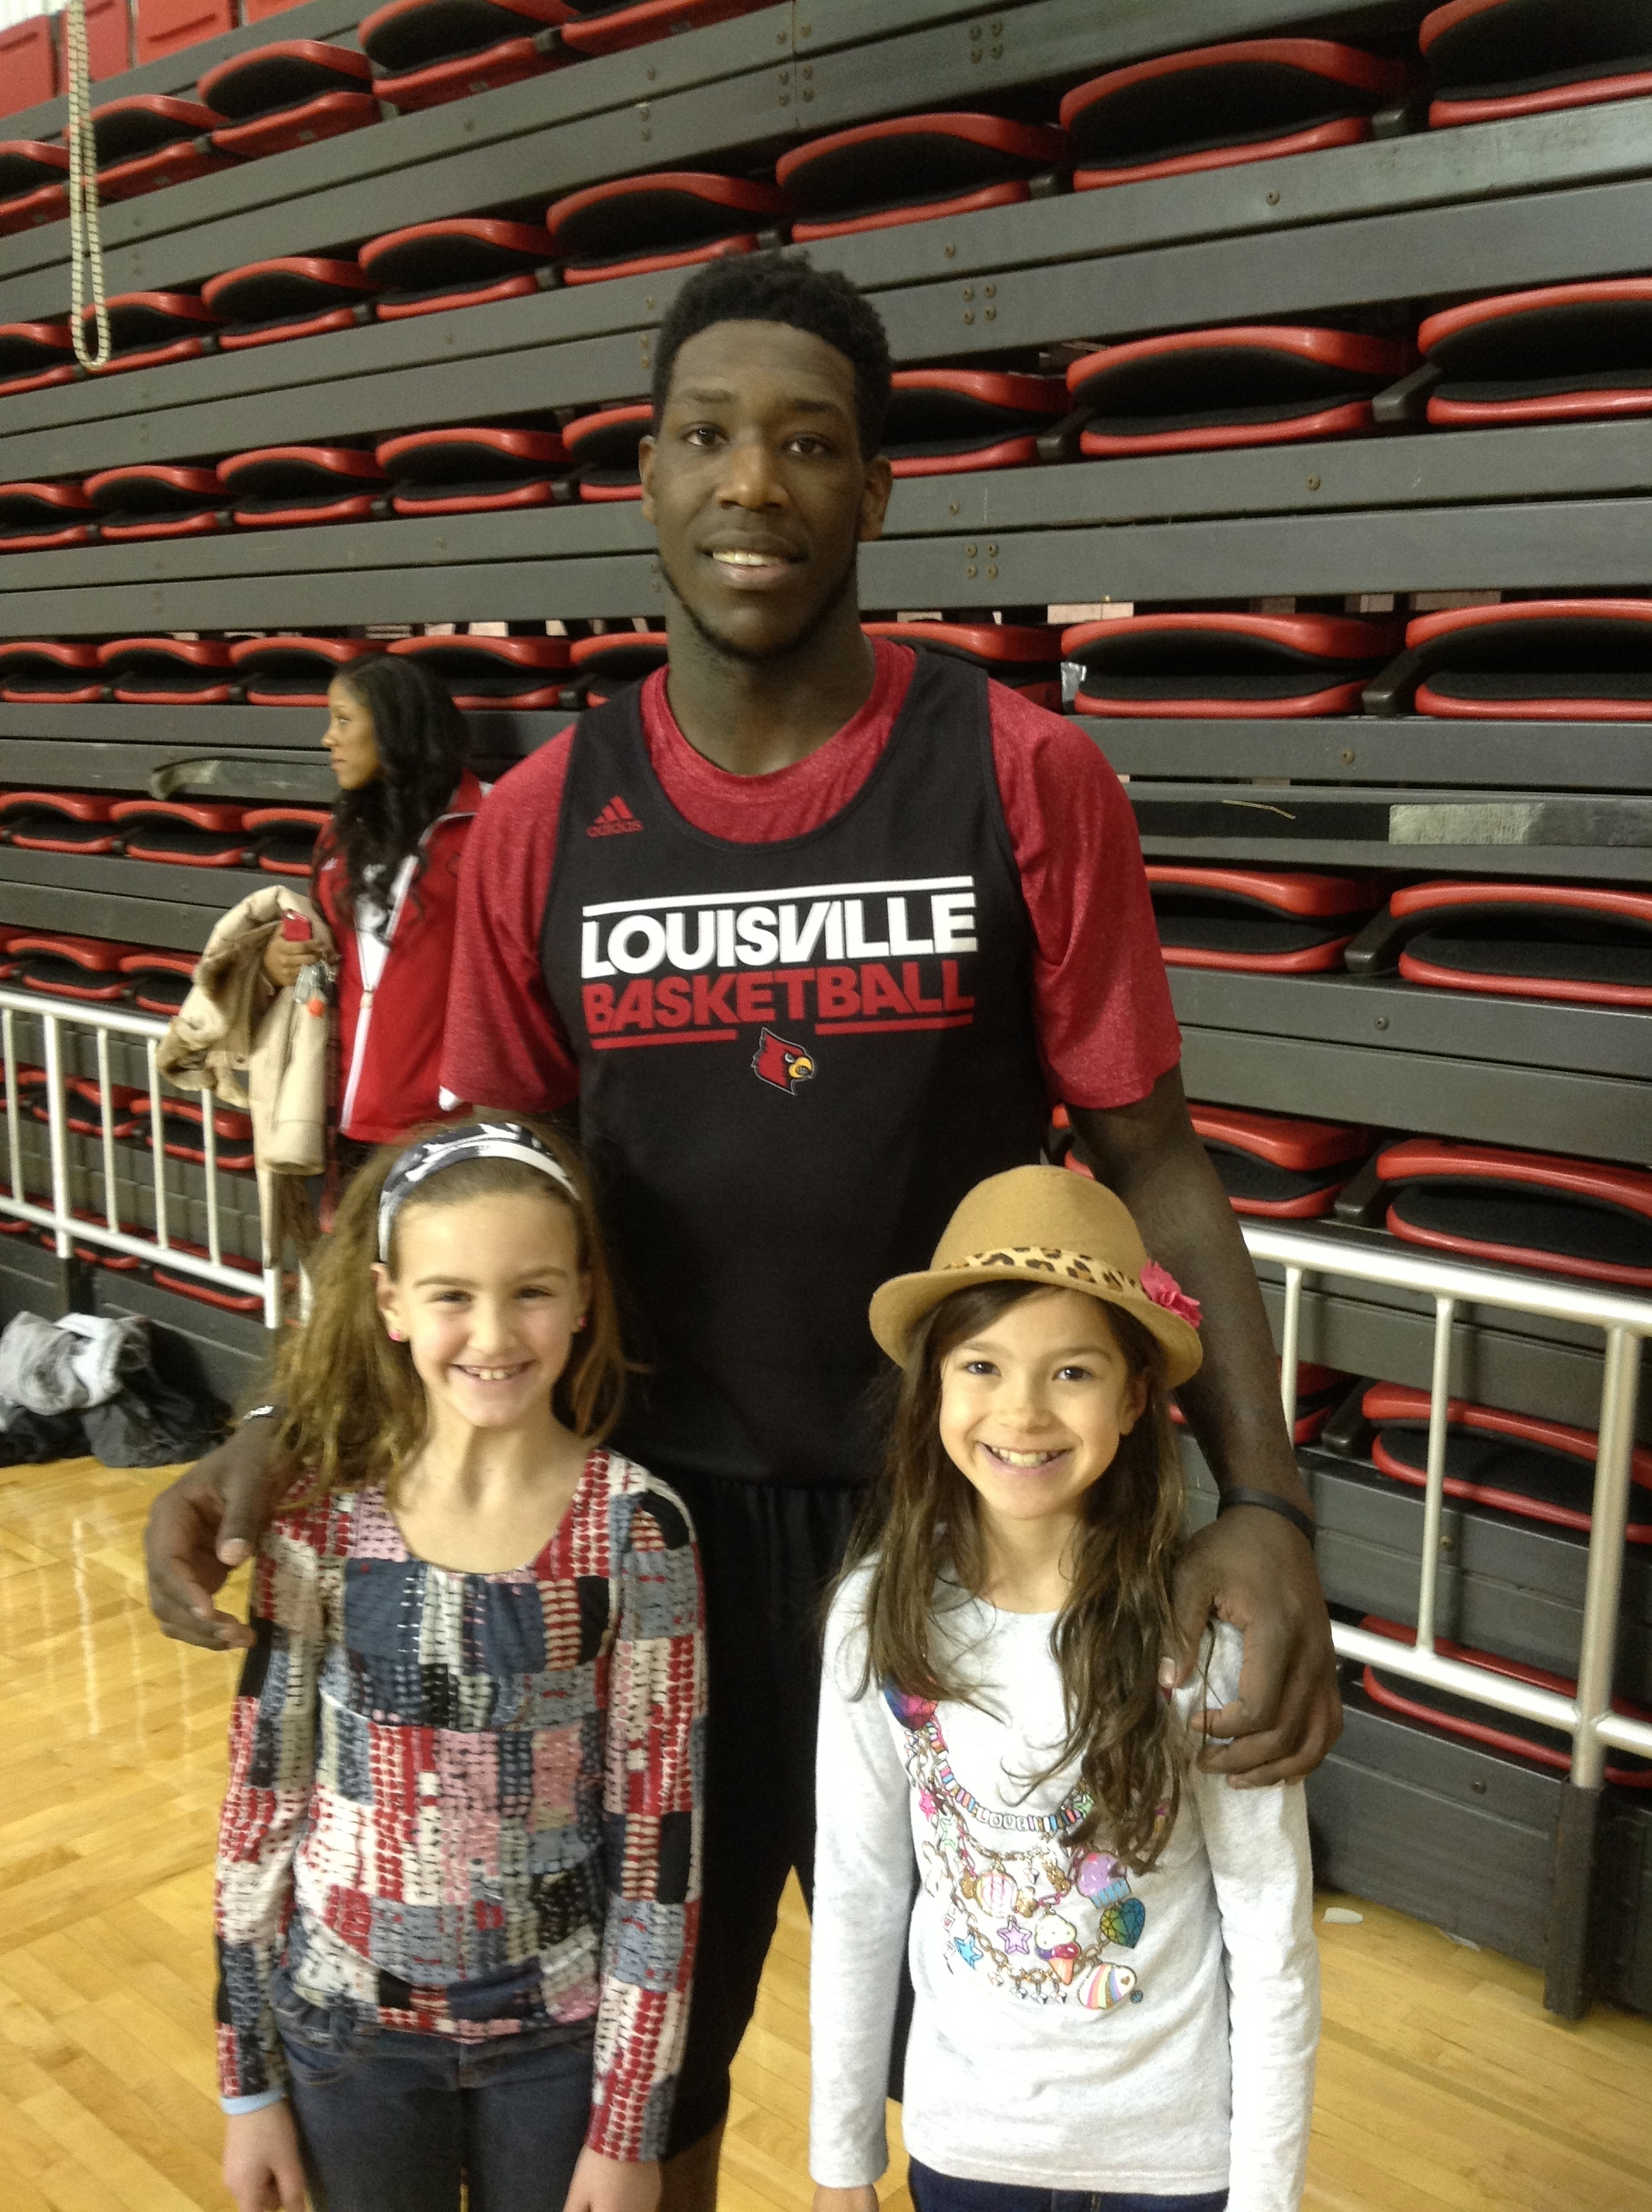 Piper & Gracie met Montrezl Harrell at the University of Louisville basketball training facility, February 2014